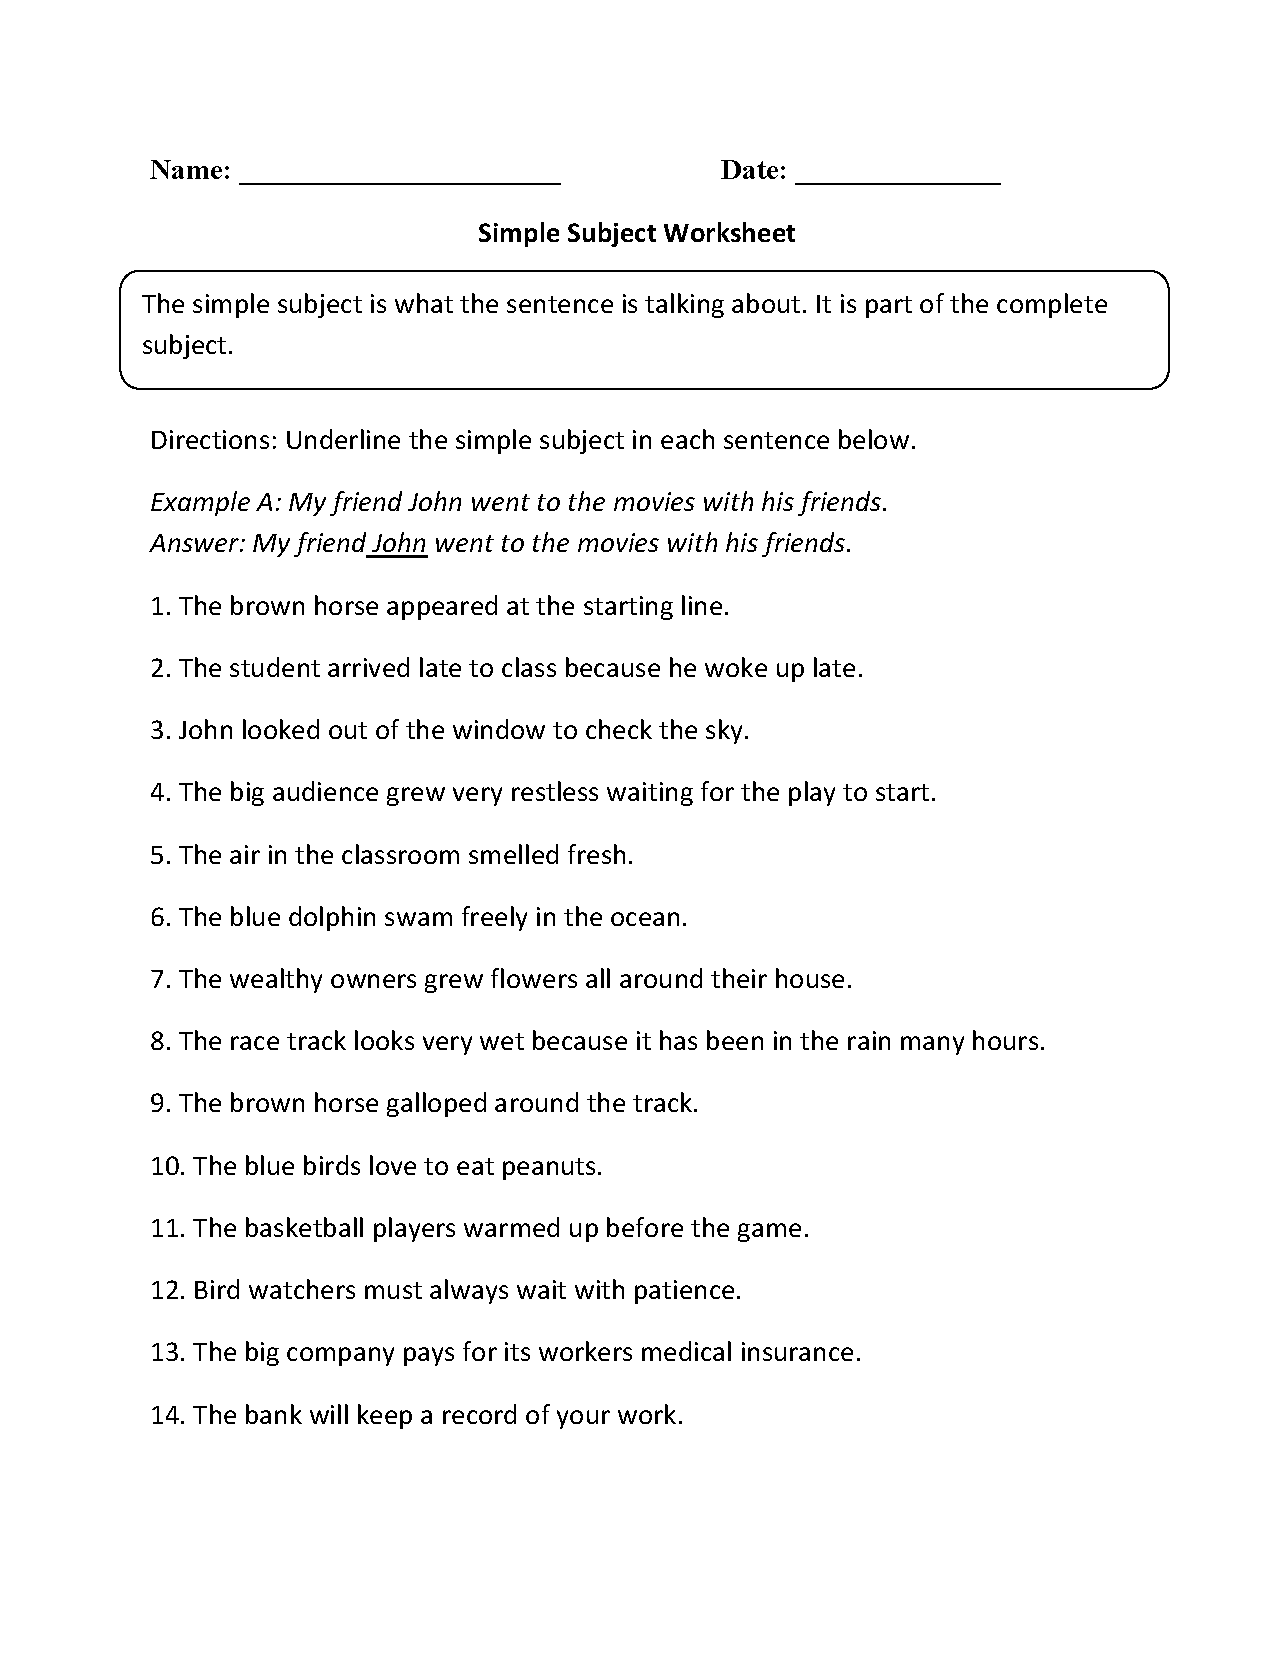 Simple Subject Worksheet